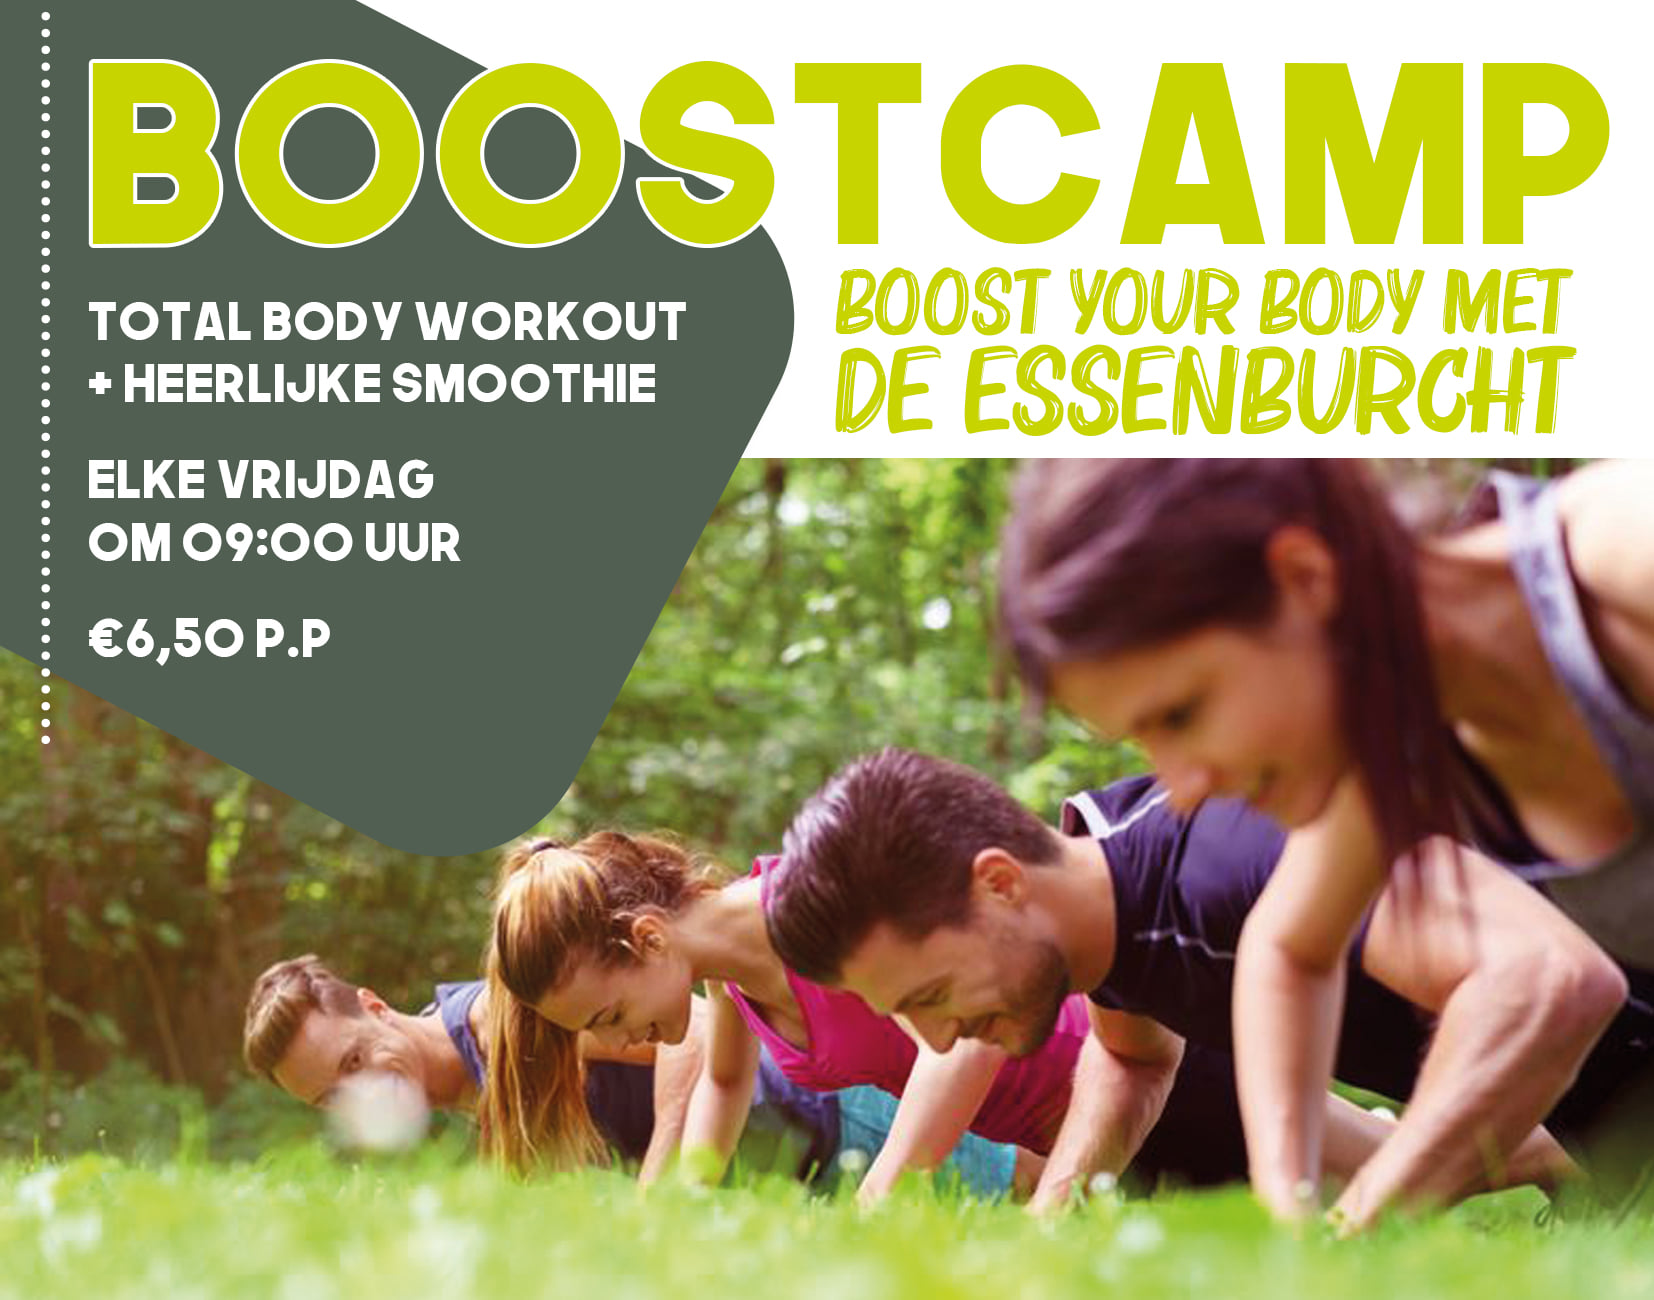 Boostcamp!